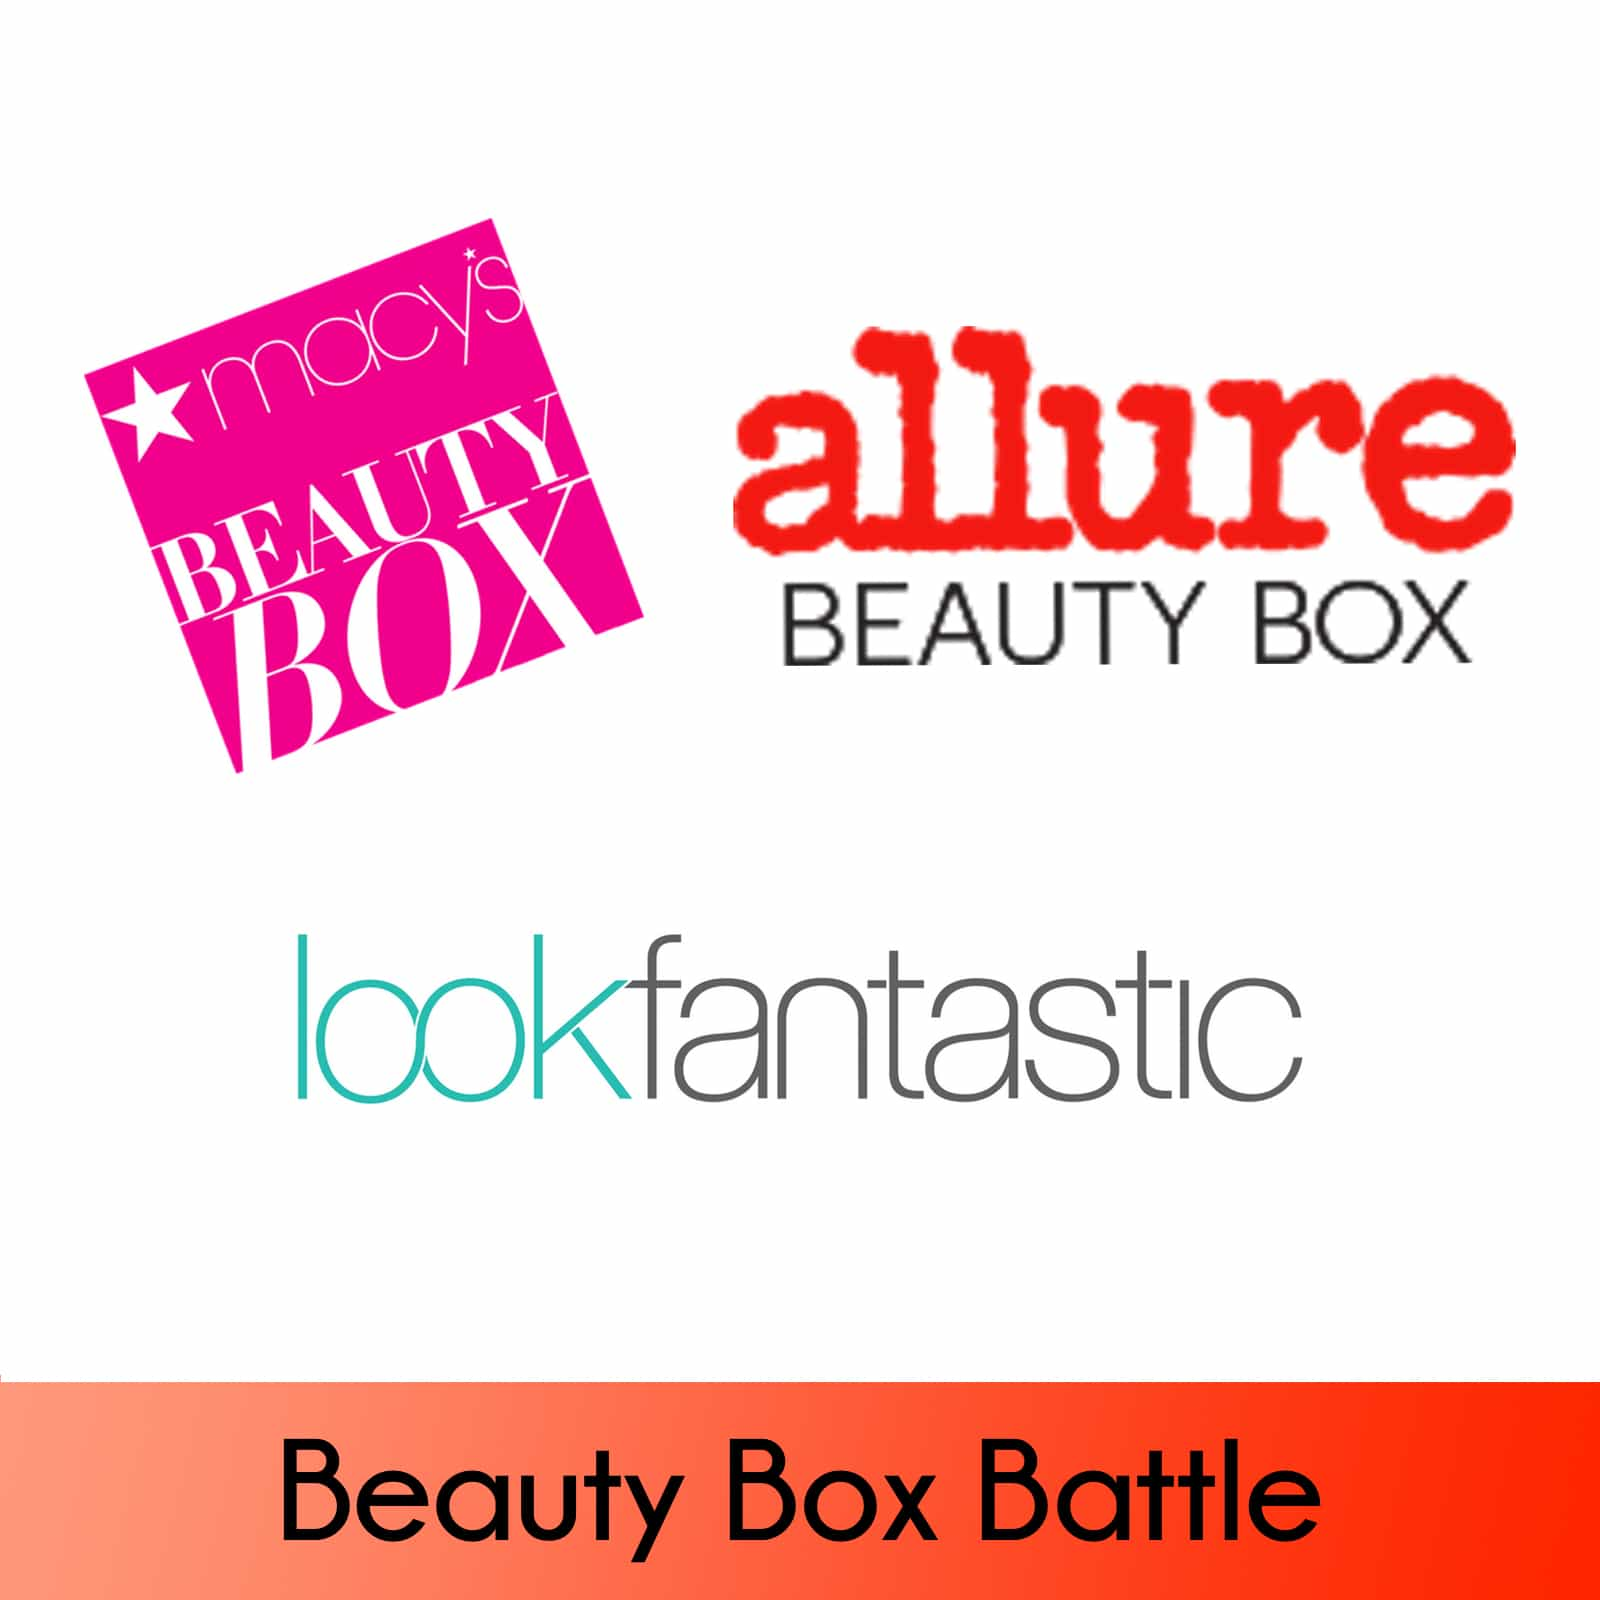 Macy's Beauty Box vs Allure Beauty Box vs Lookfantastic November 2017 Beauty Boxes!